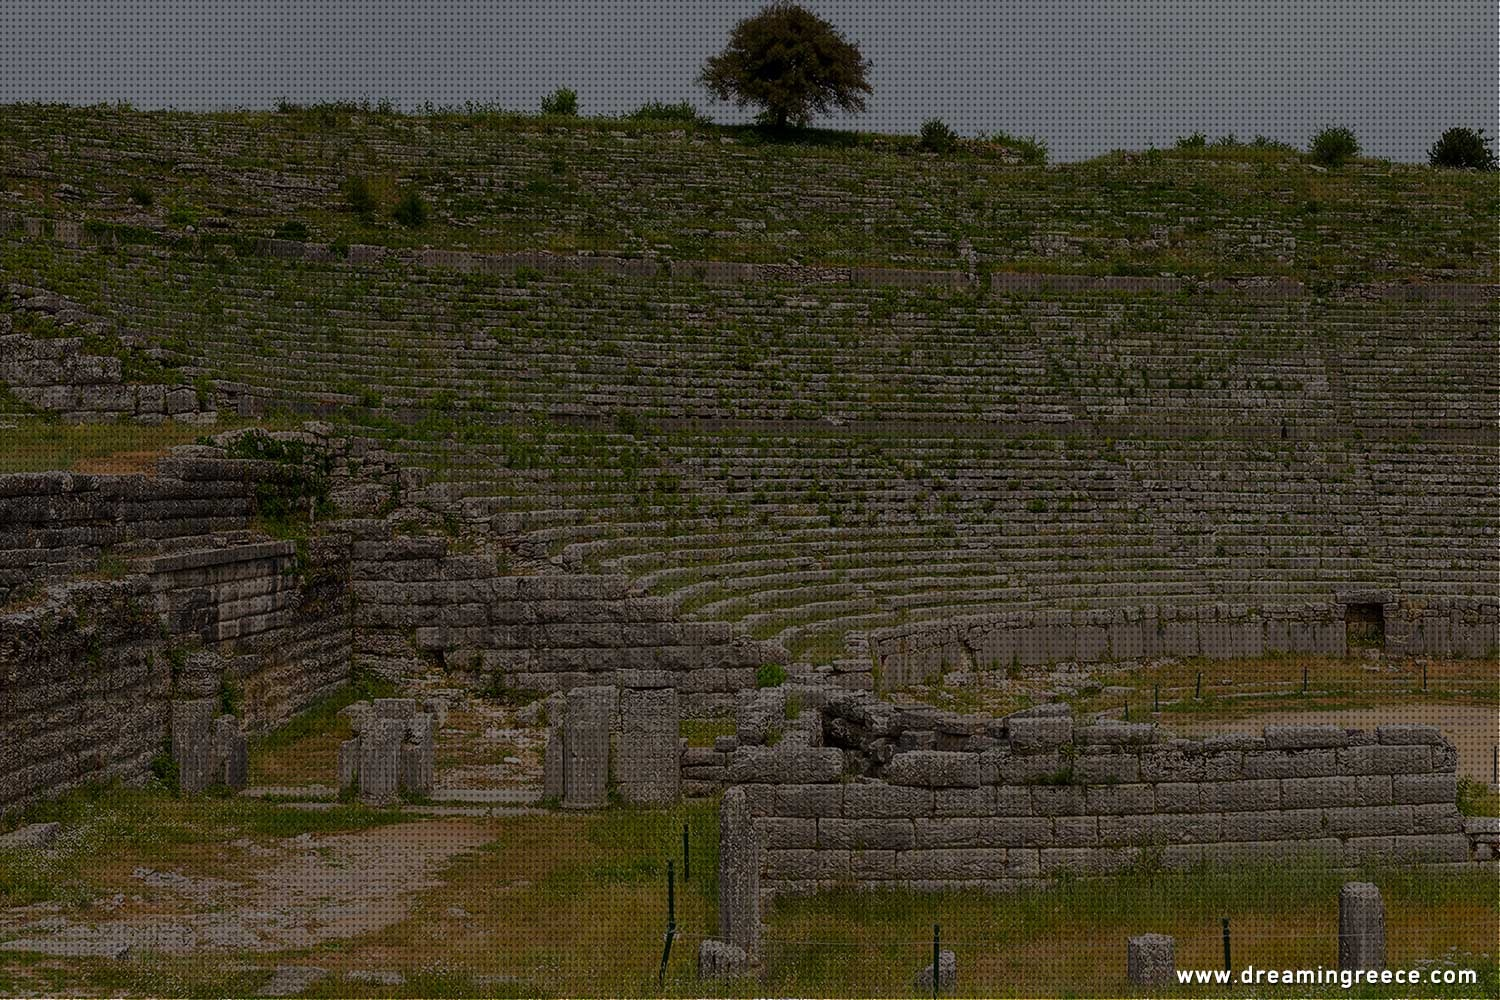 Archaeological Site of Dodona in Epirus. Archaeological sites in Greece.